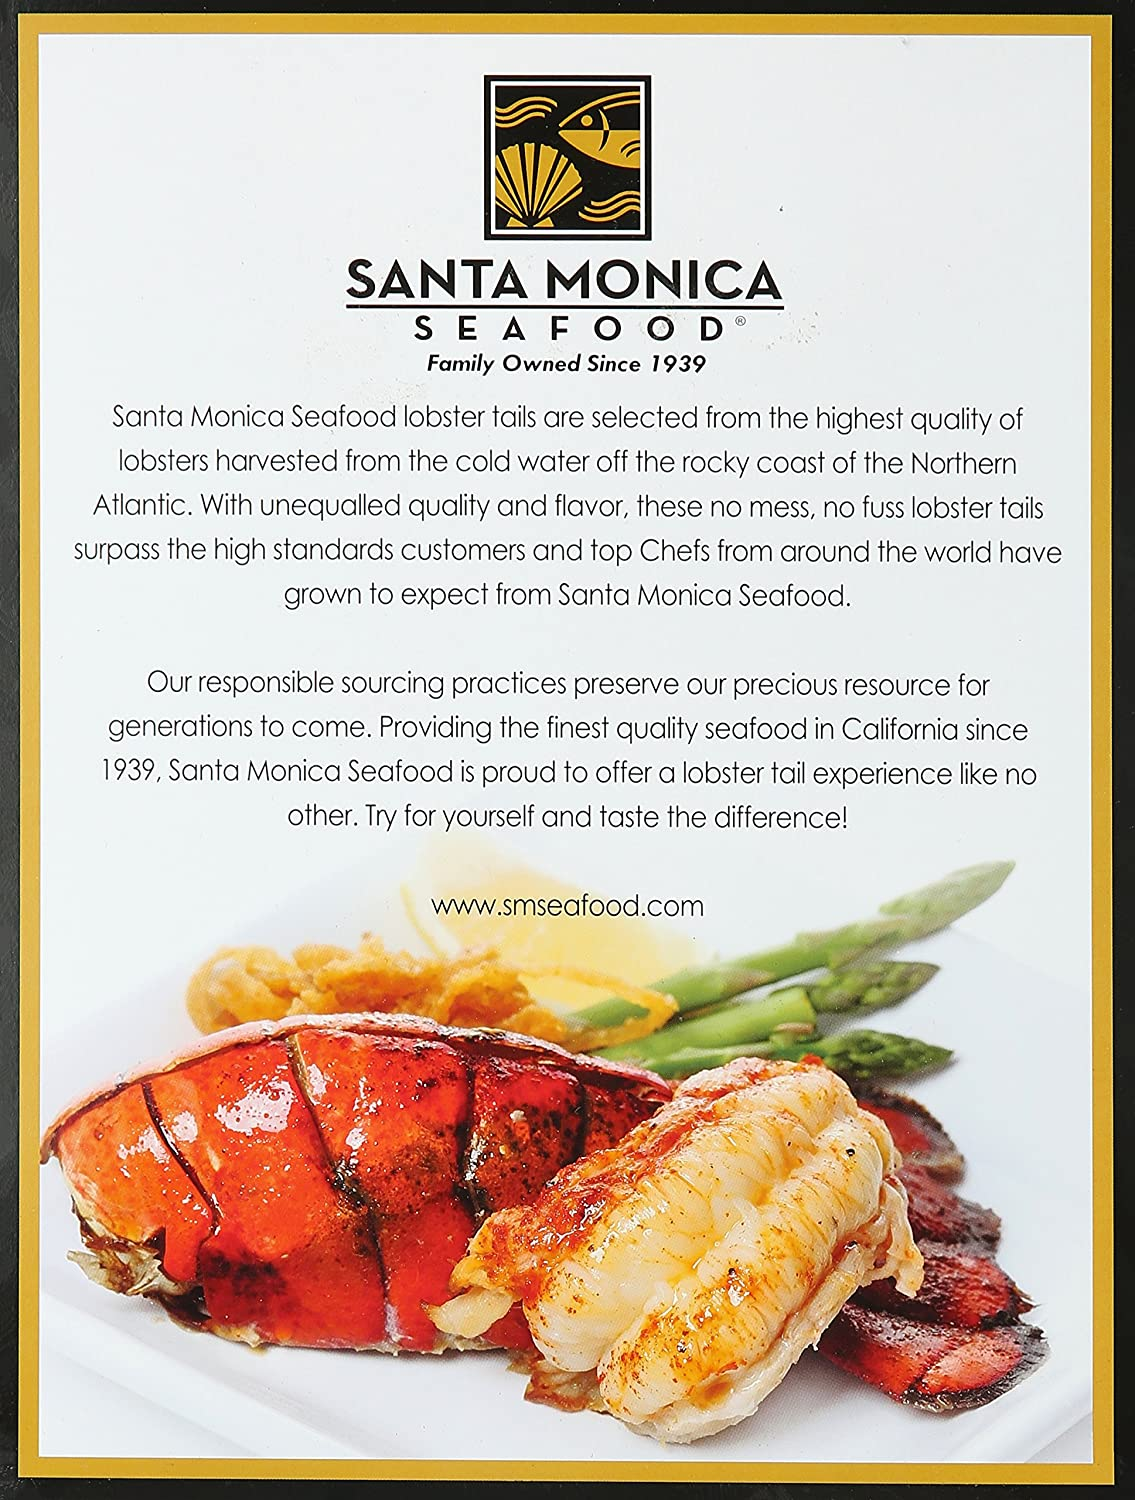 Santa Monica Seafood, Wild Caught Lobster Tails, Twin Pack, 0.5 lb ...